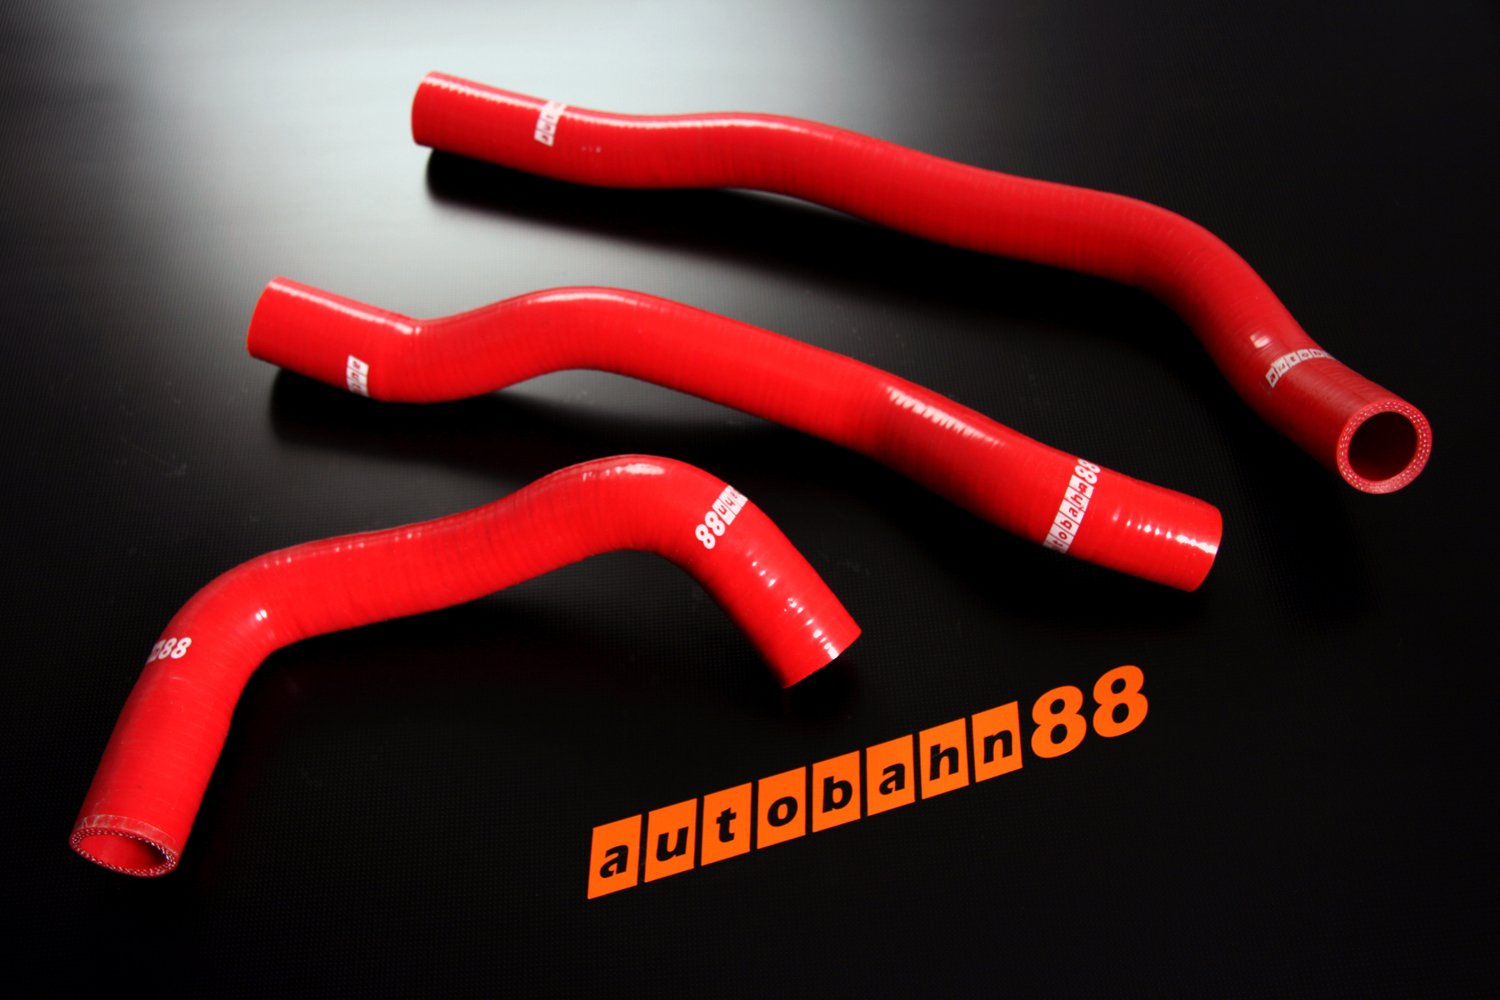 Autobahn88 Radiator Coolant Silicone Hose Kit for 1991-2002 Mazda RX7 FD3S 13B-REW Blue -without Clamp Set